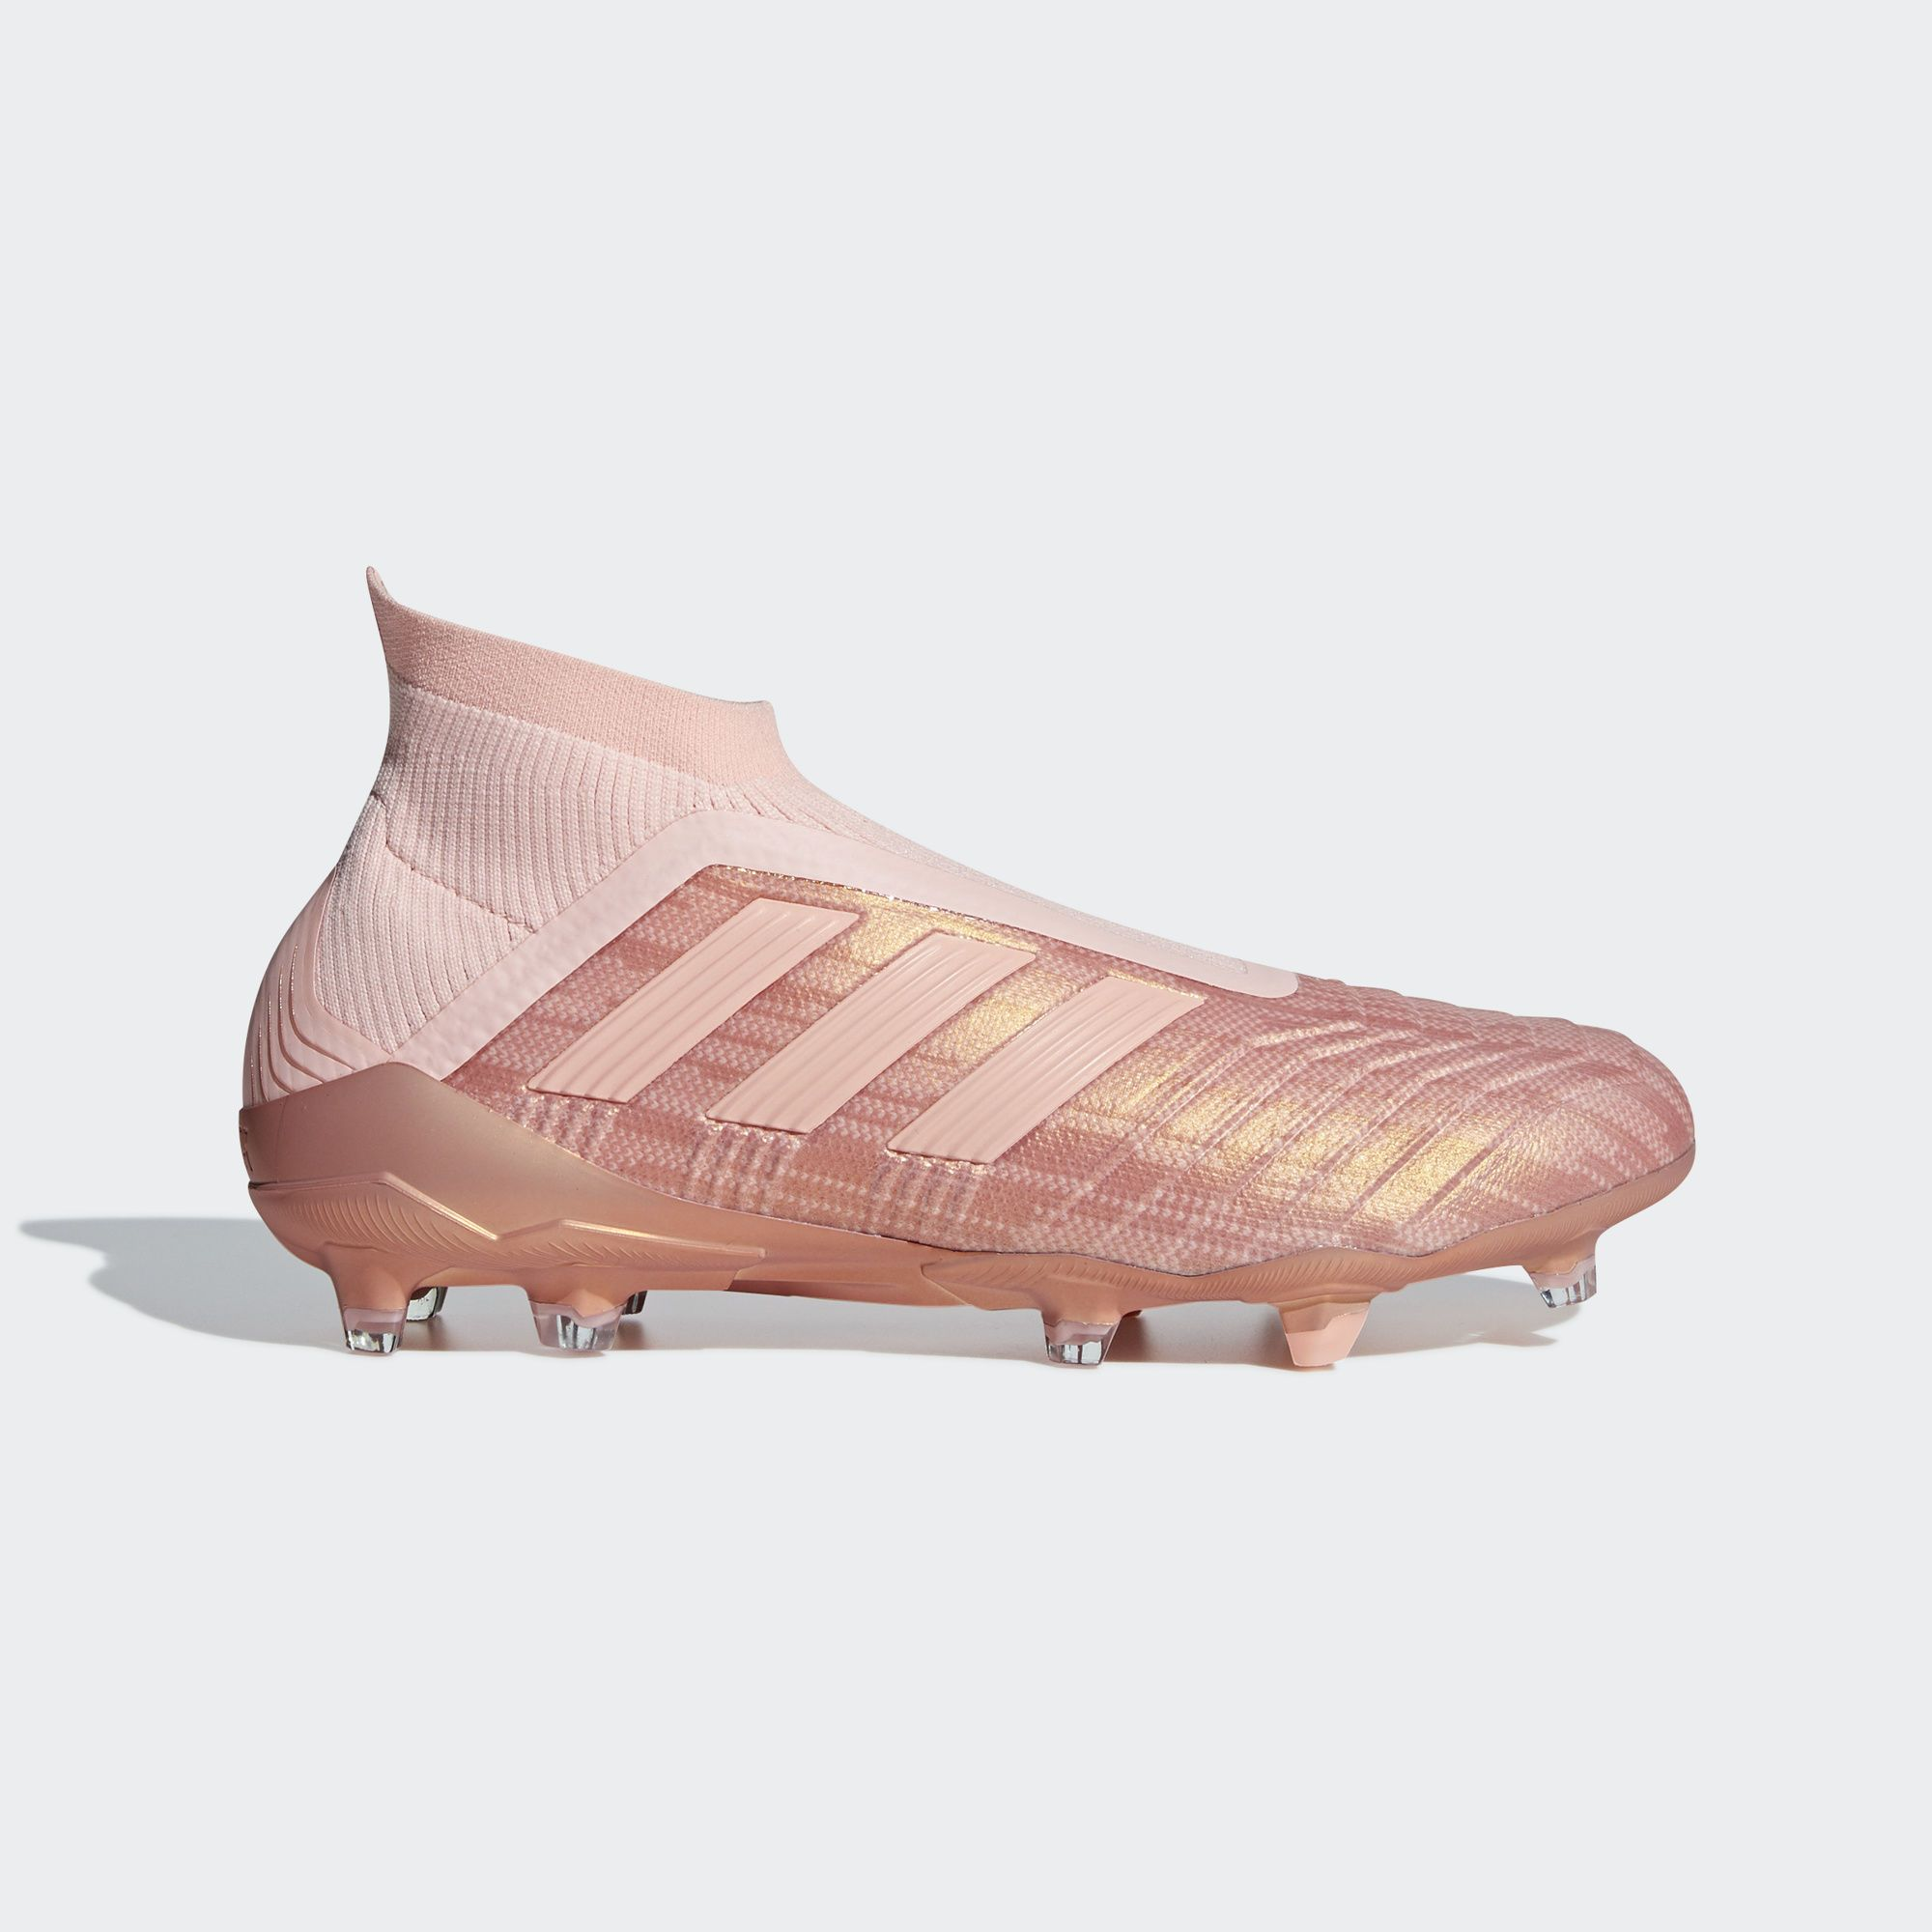 30b360b58449 Shop for Predator 18+ Firm Ground - Orange at adidas.ca! See all the ...